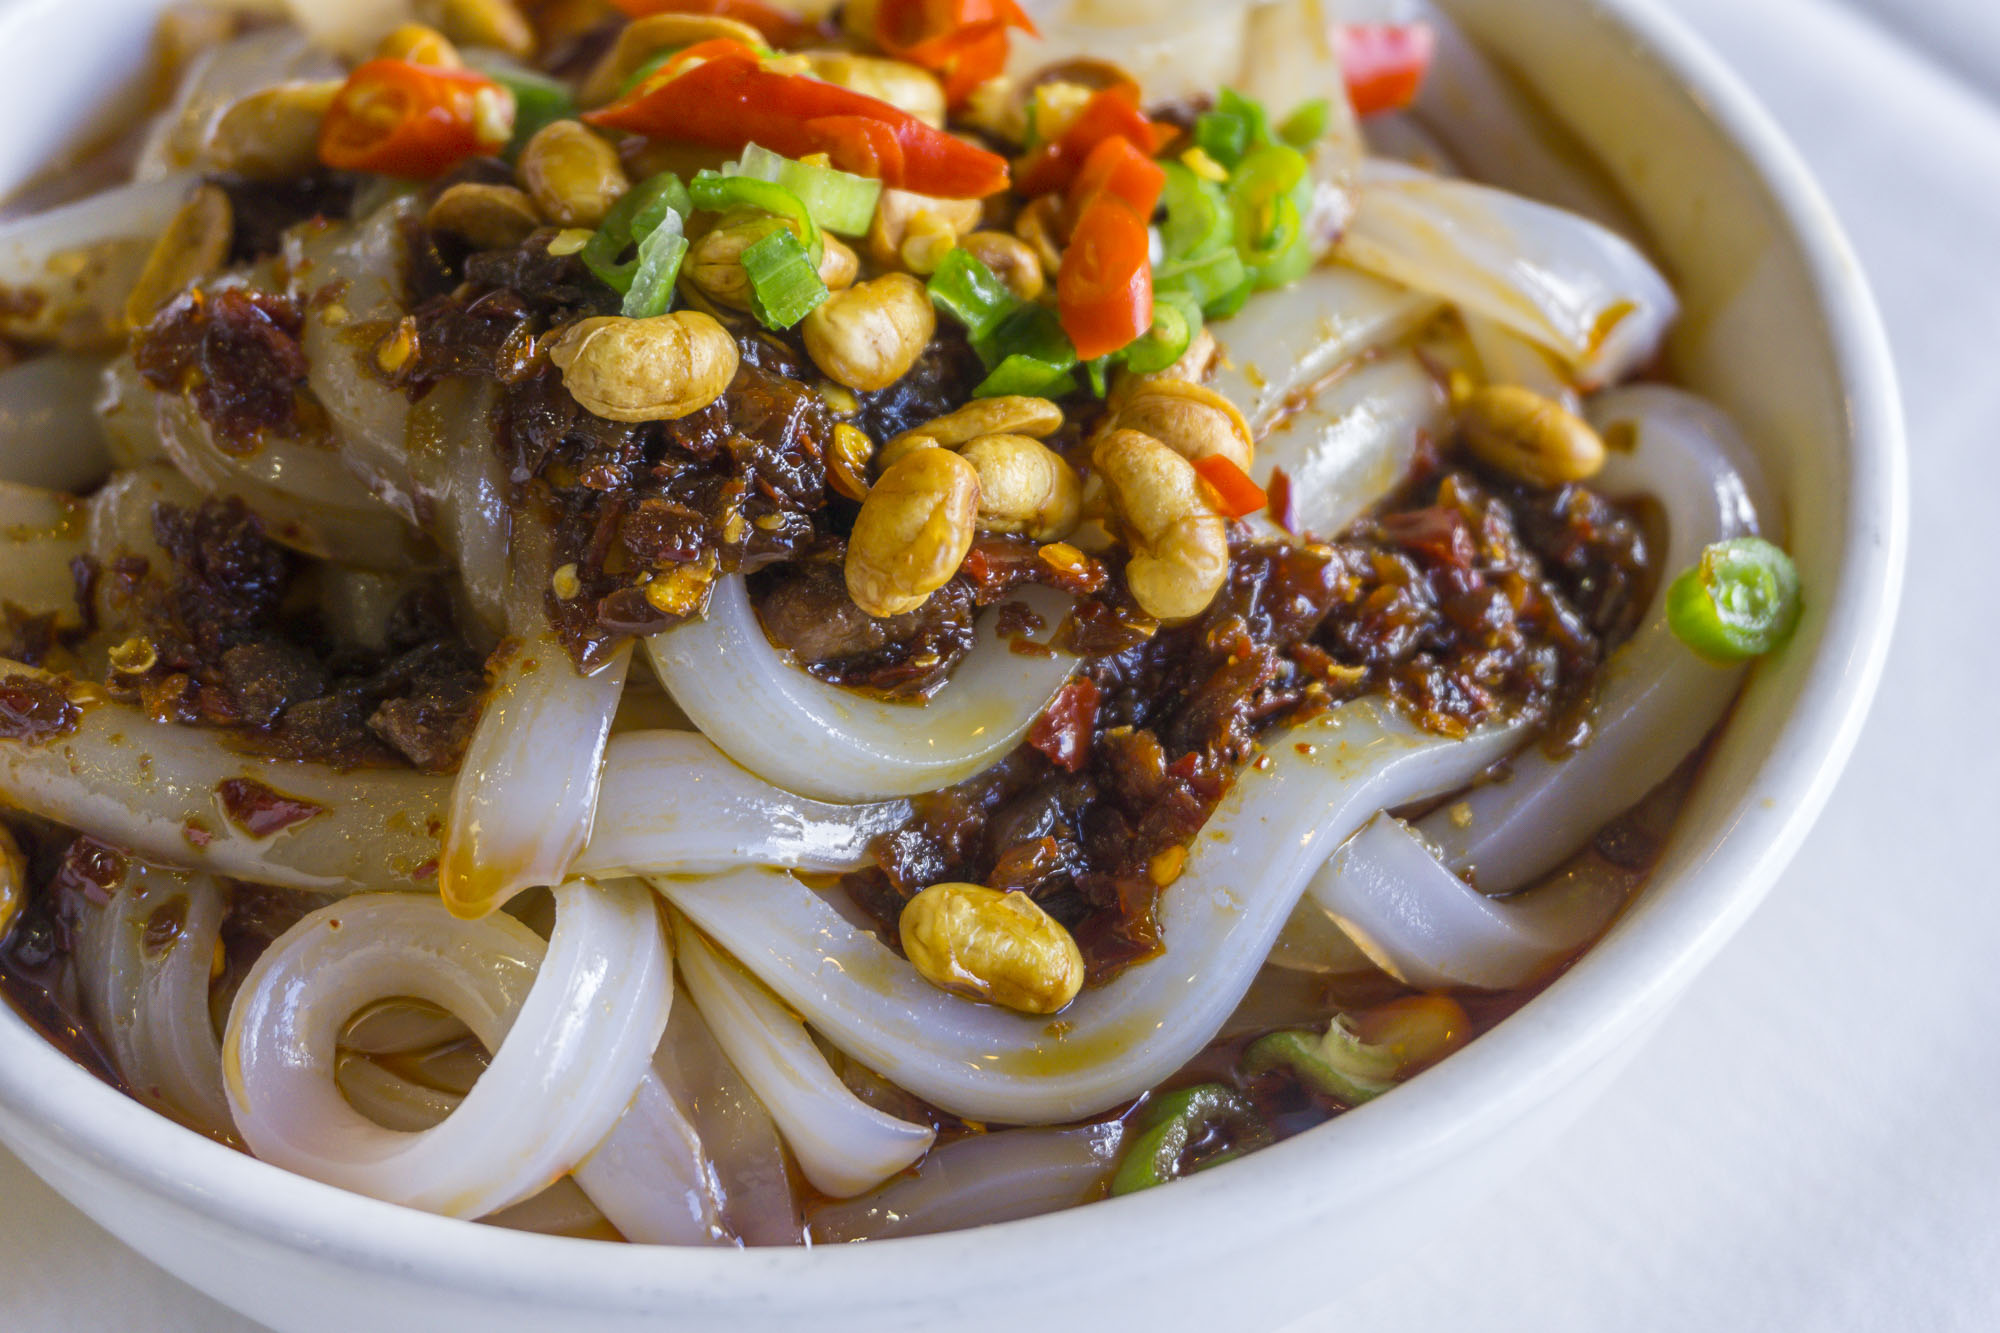 Major Sichuan Chain Chengdu Taste Gets Closer to Opening Its First Seattle Location